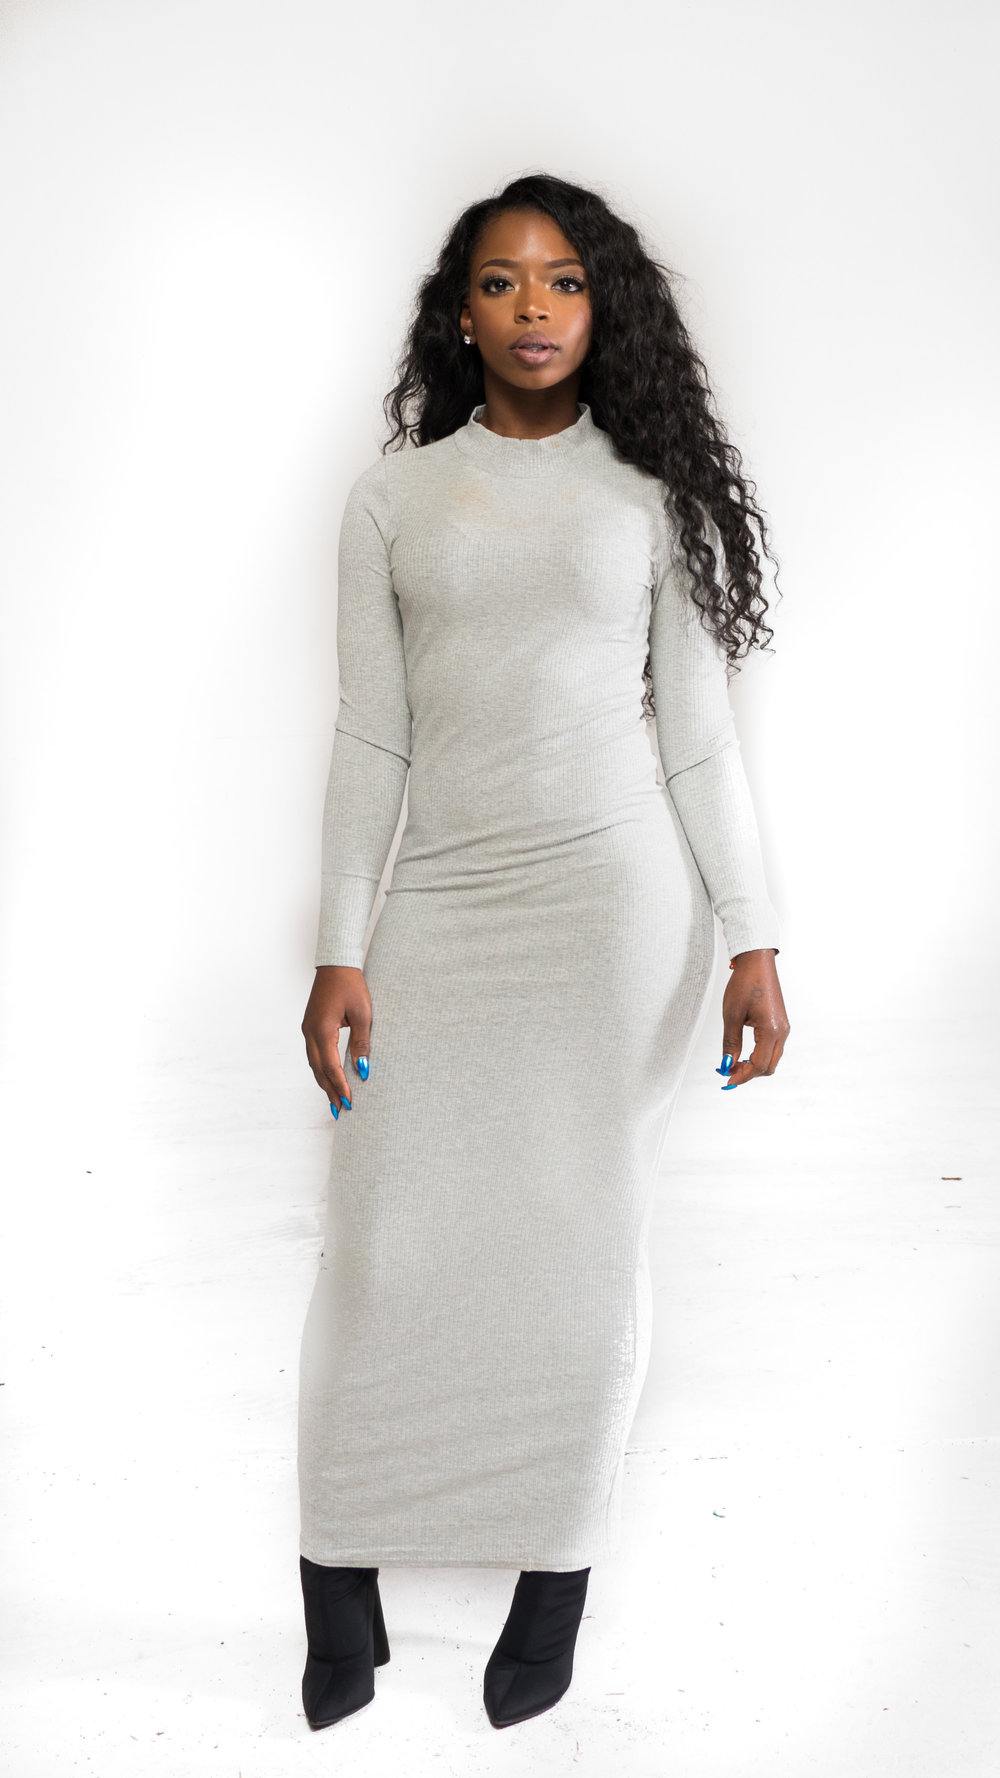 isis clothing - product shots-1580509.jpg